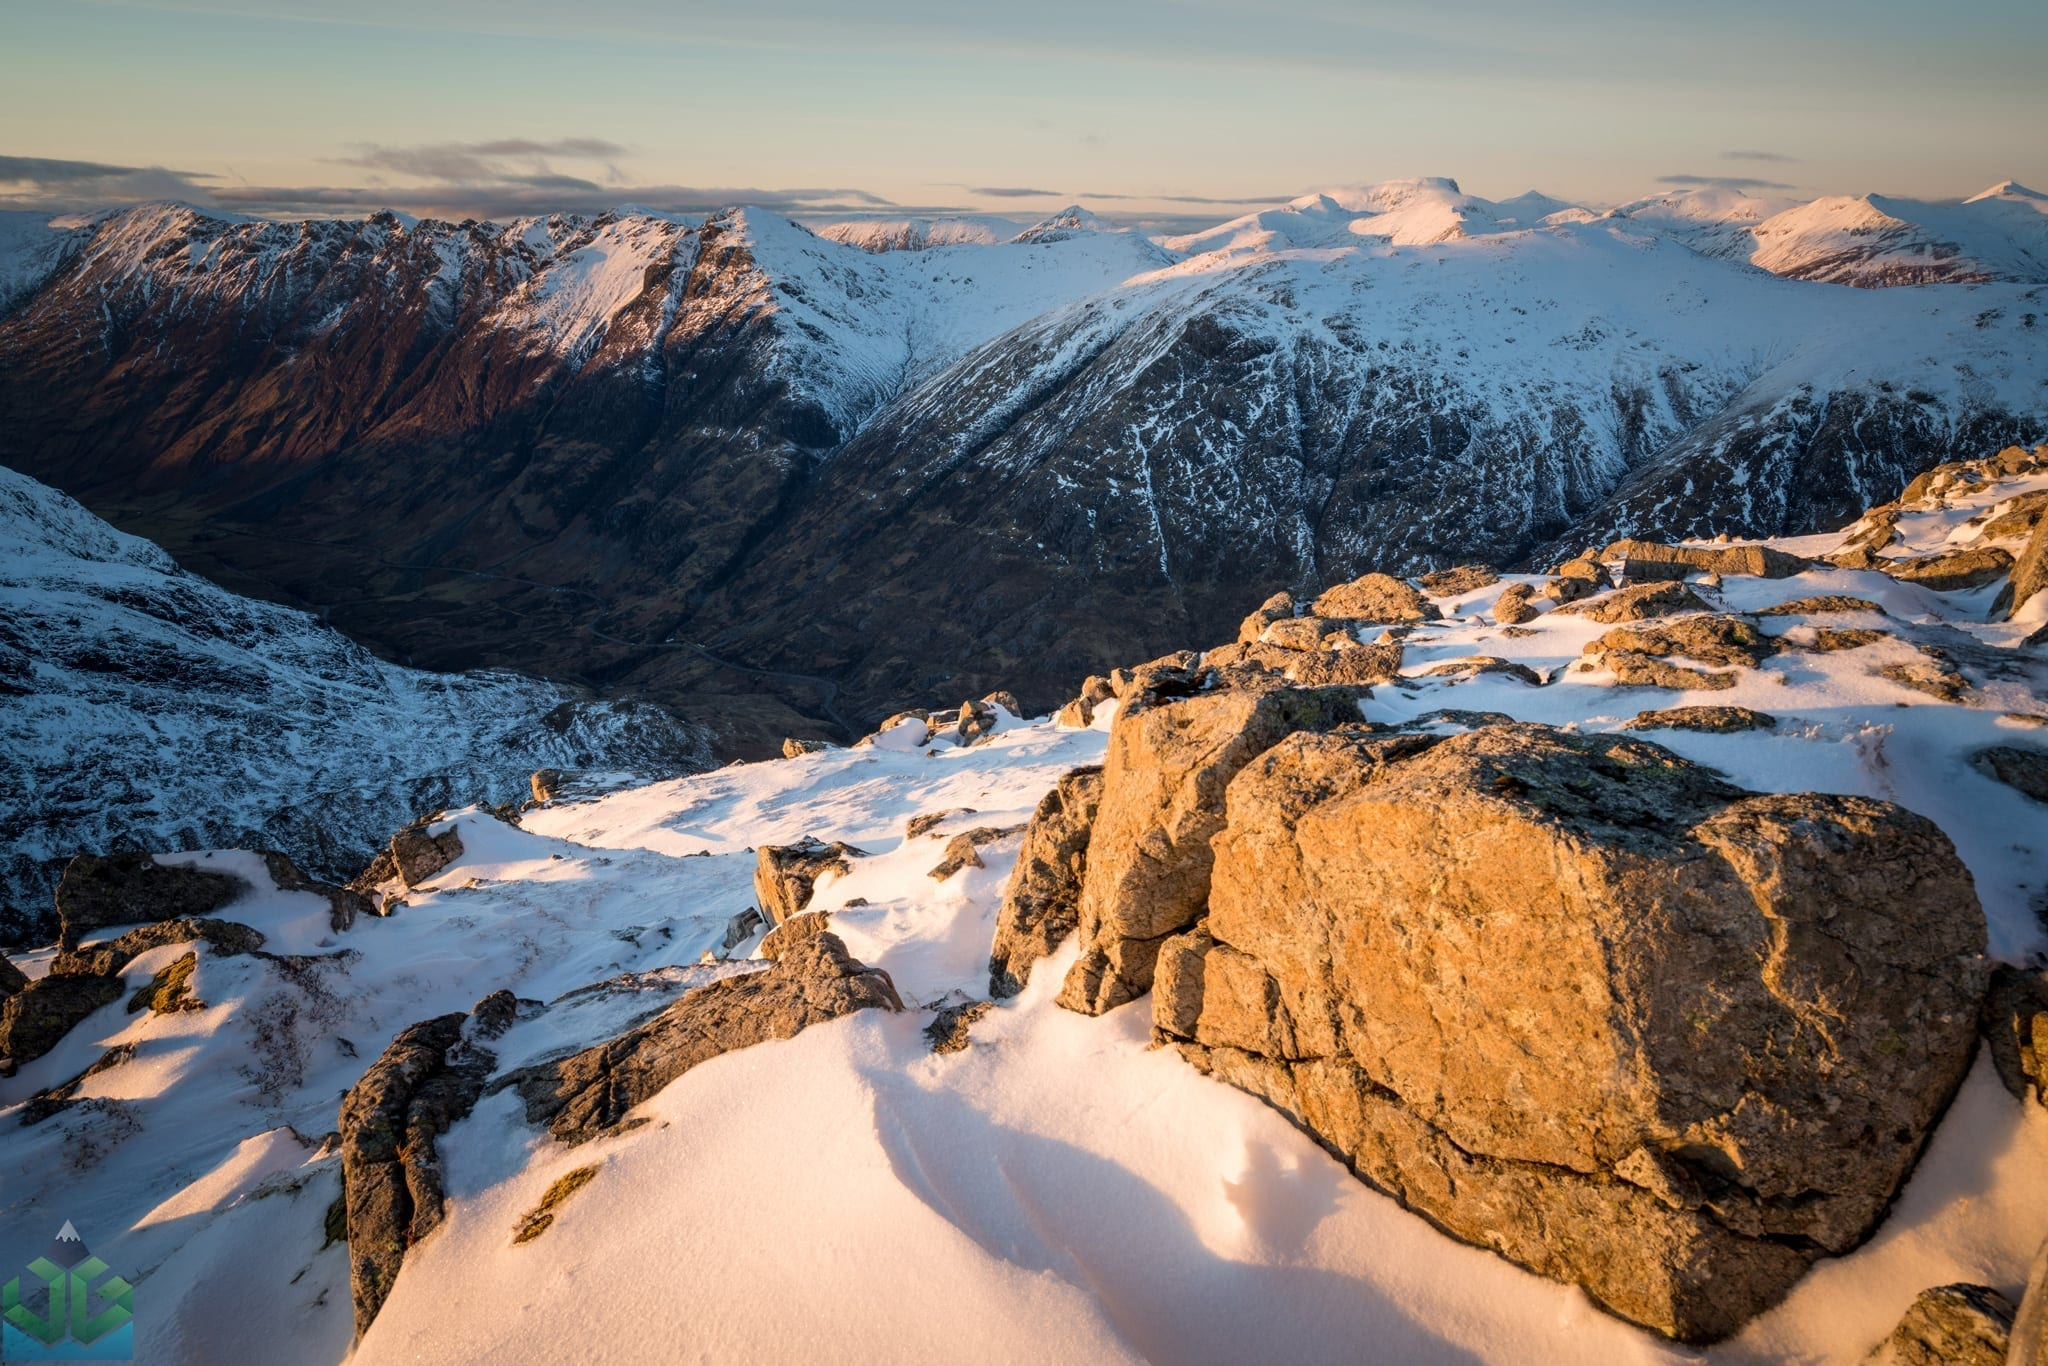 Stob Coire Raineach Winter Sunset looking over towards Aanoch Eagach